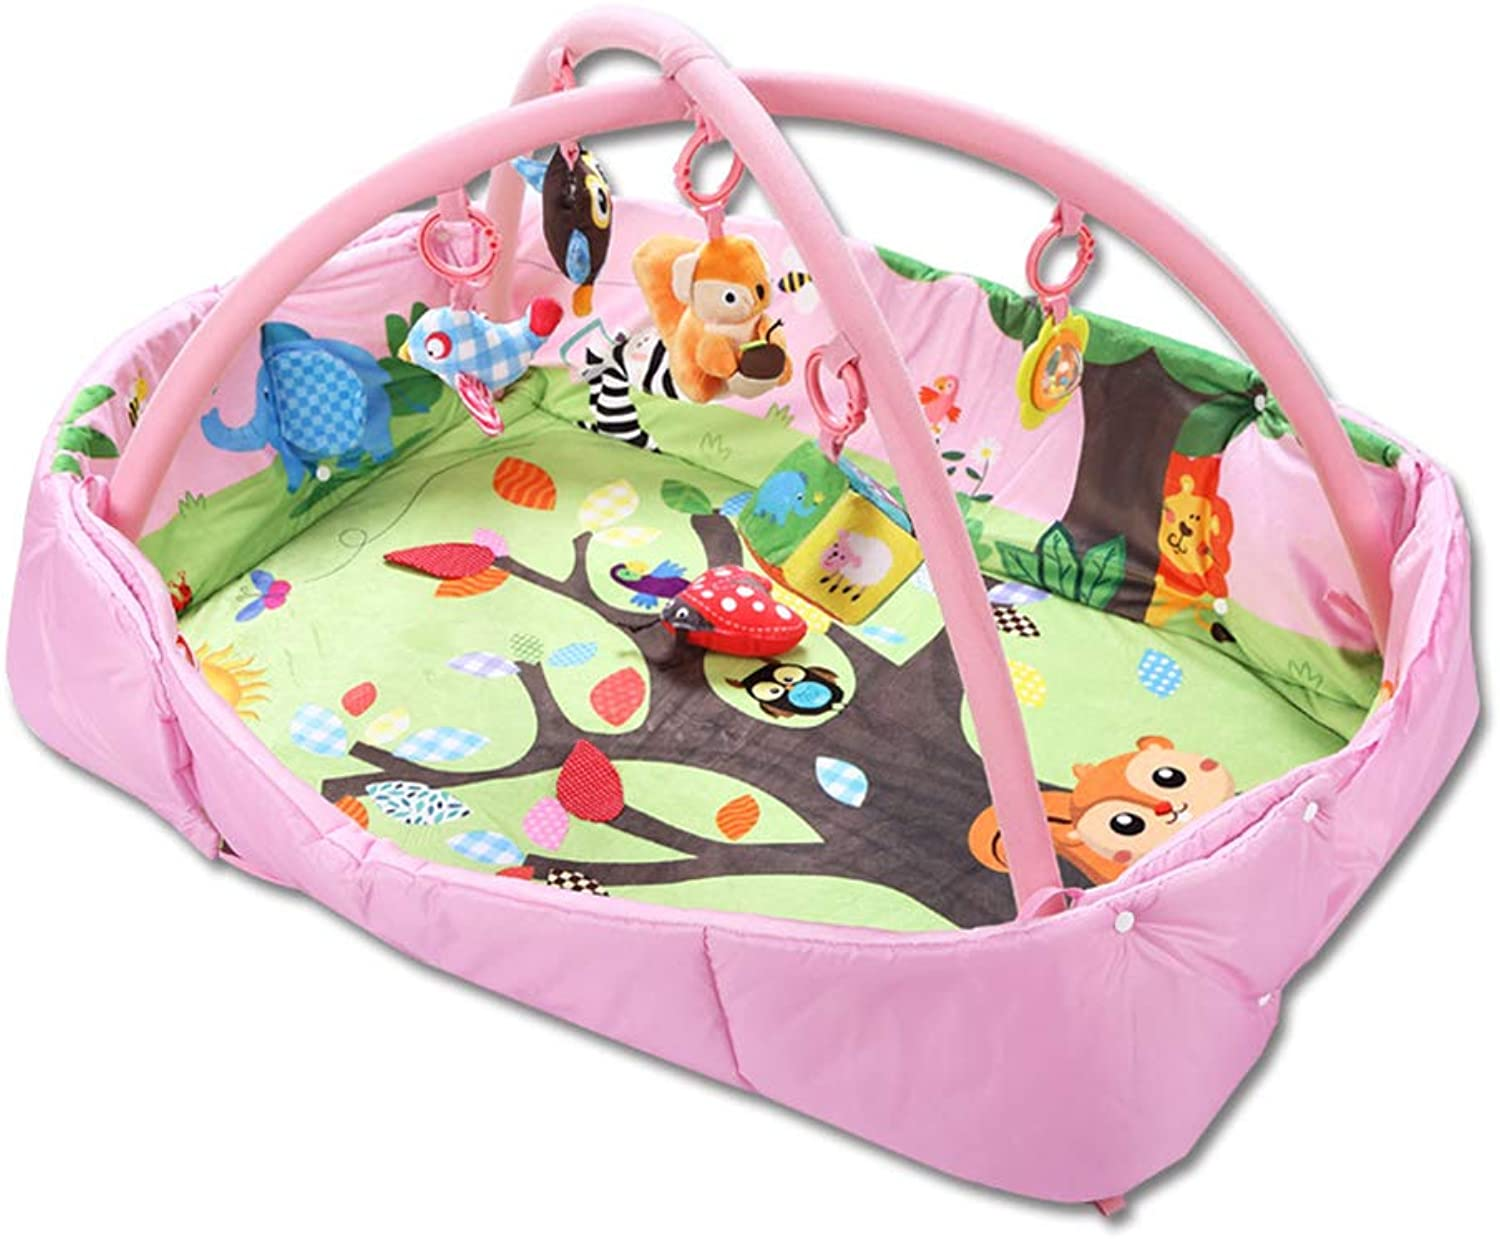 Baby Game Furniture Bed, Baby Cot Portable Newborn Baby Cot, Suitable for Bedroom Living Room Ground Recreation Bed